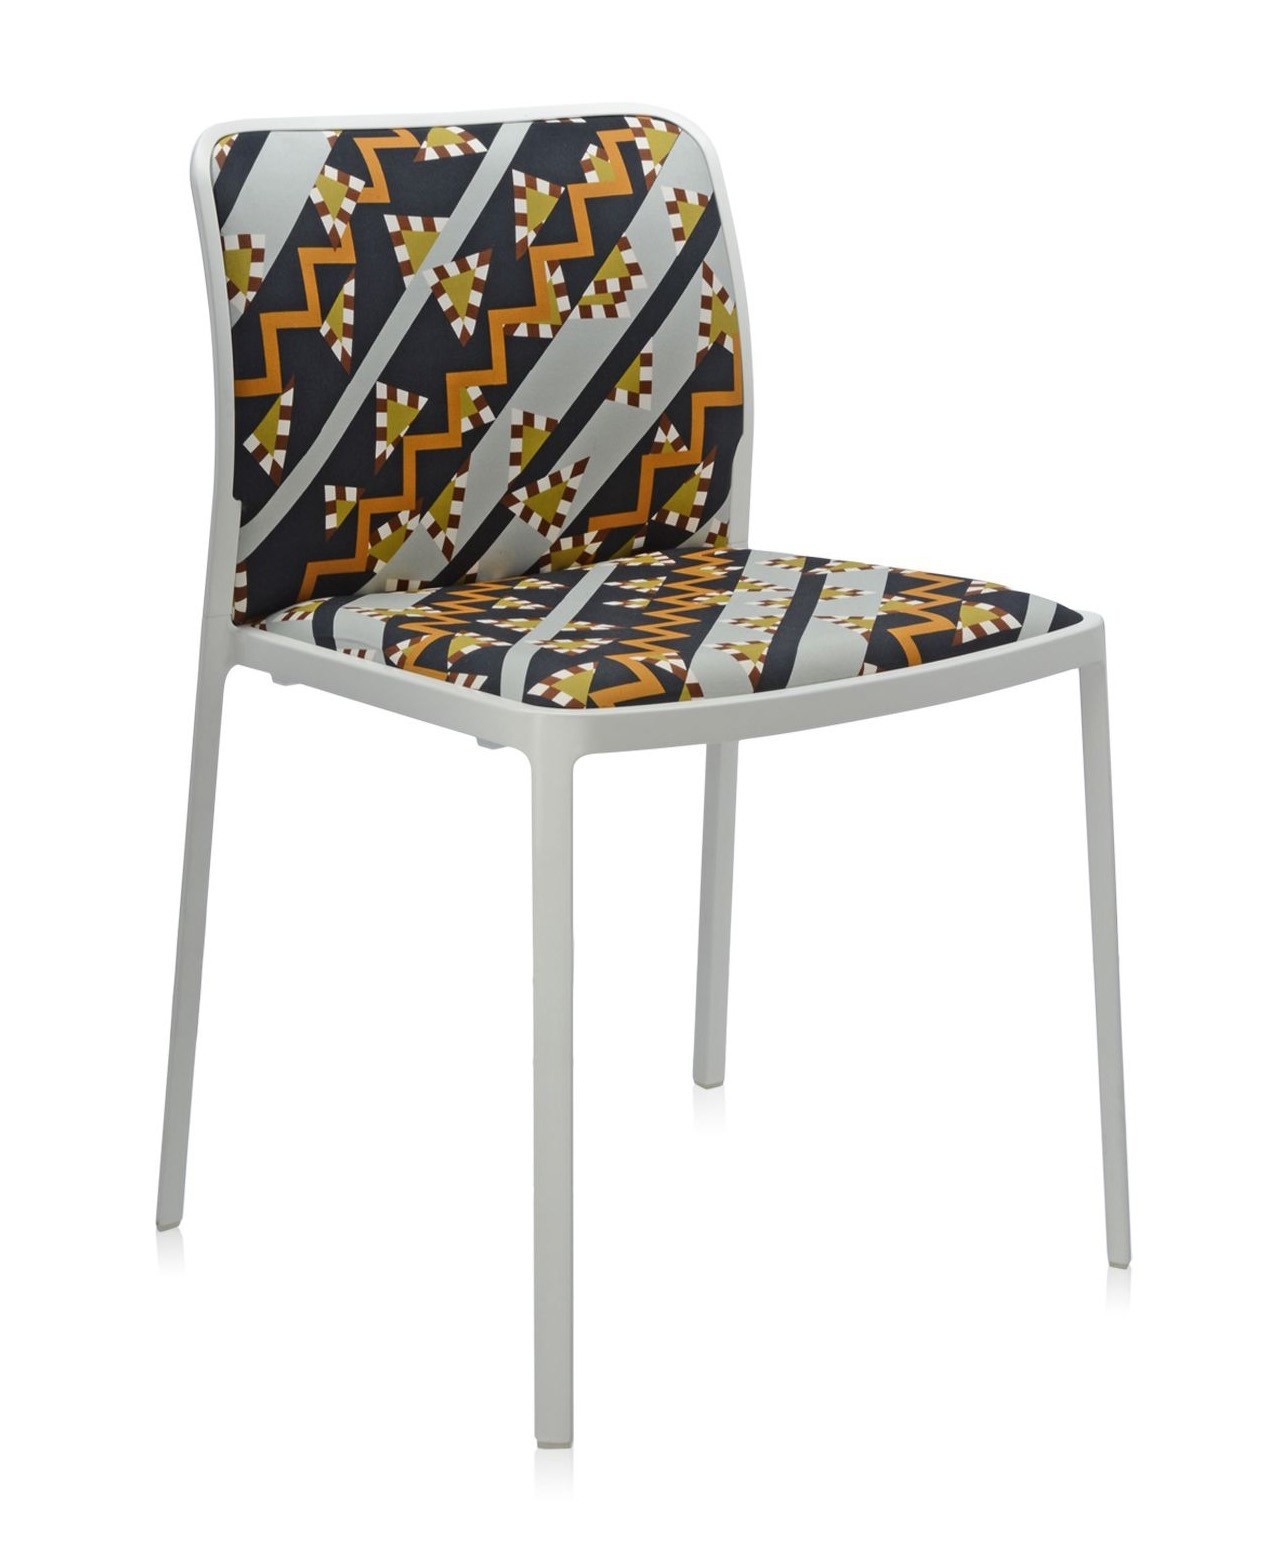 Kartell Audrey Soft Memphis Chair (Priced Each, Sold in Sets of 2)